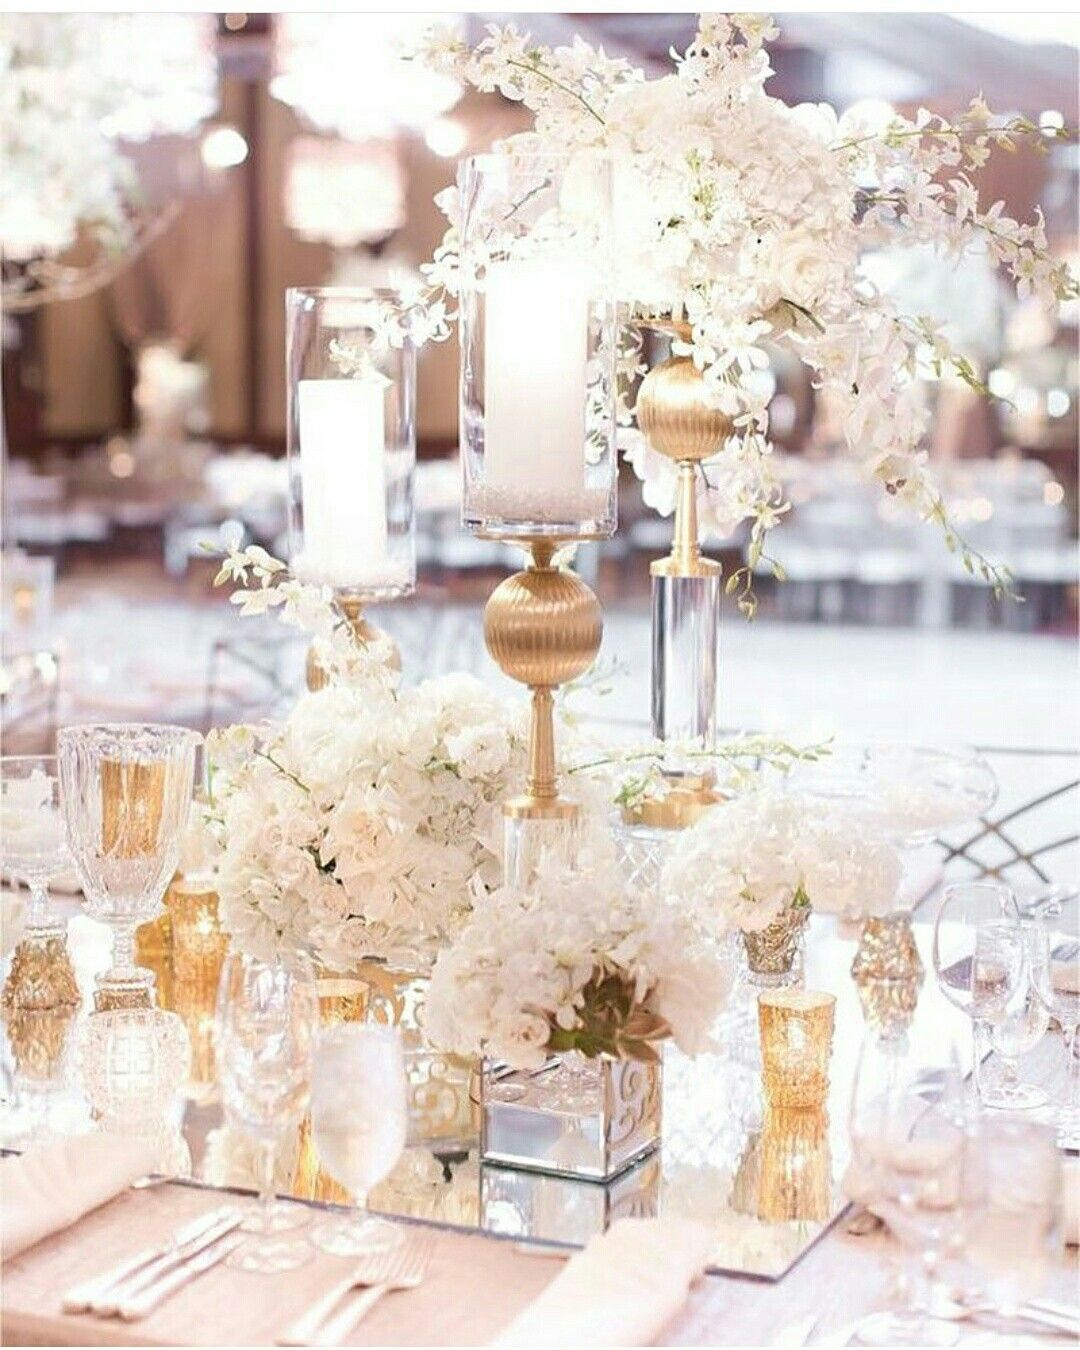 Pin by Madina مدنت on loveliness❤ | Pinterest | Centrepieces ...